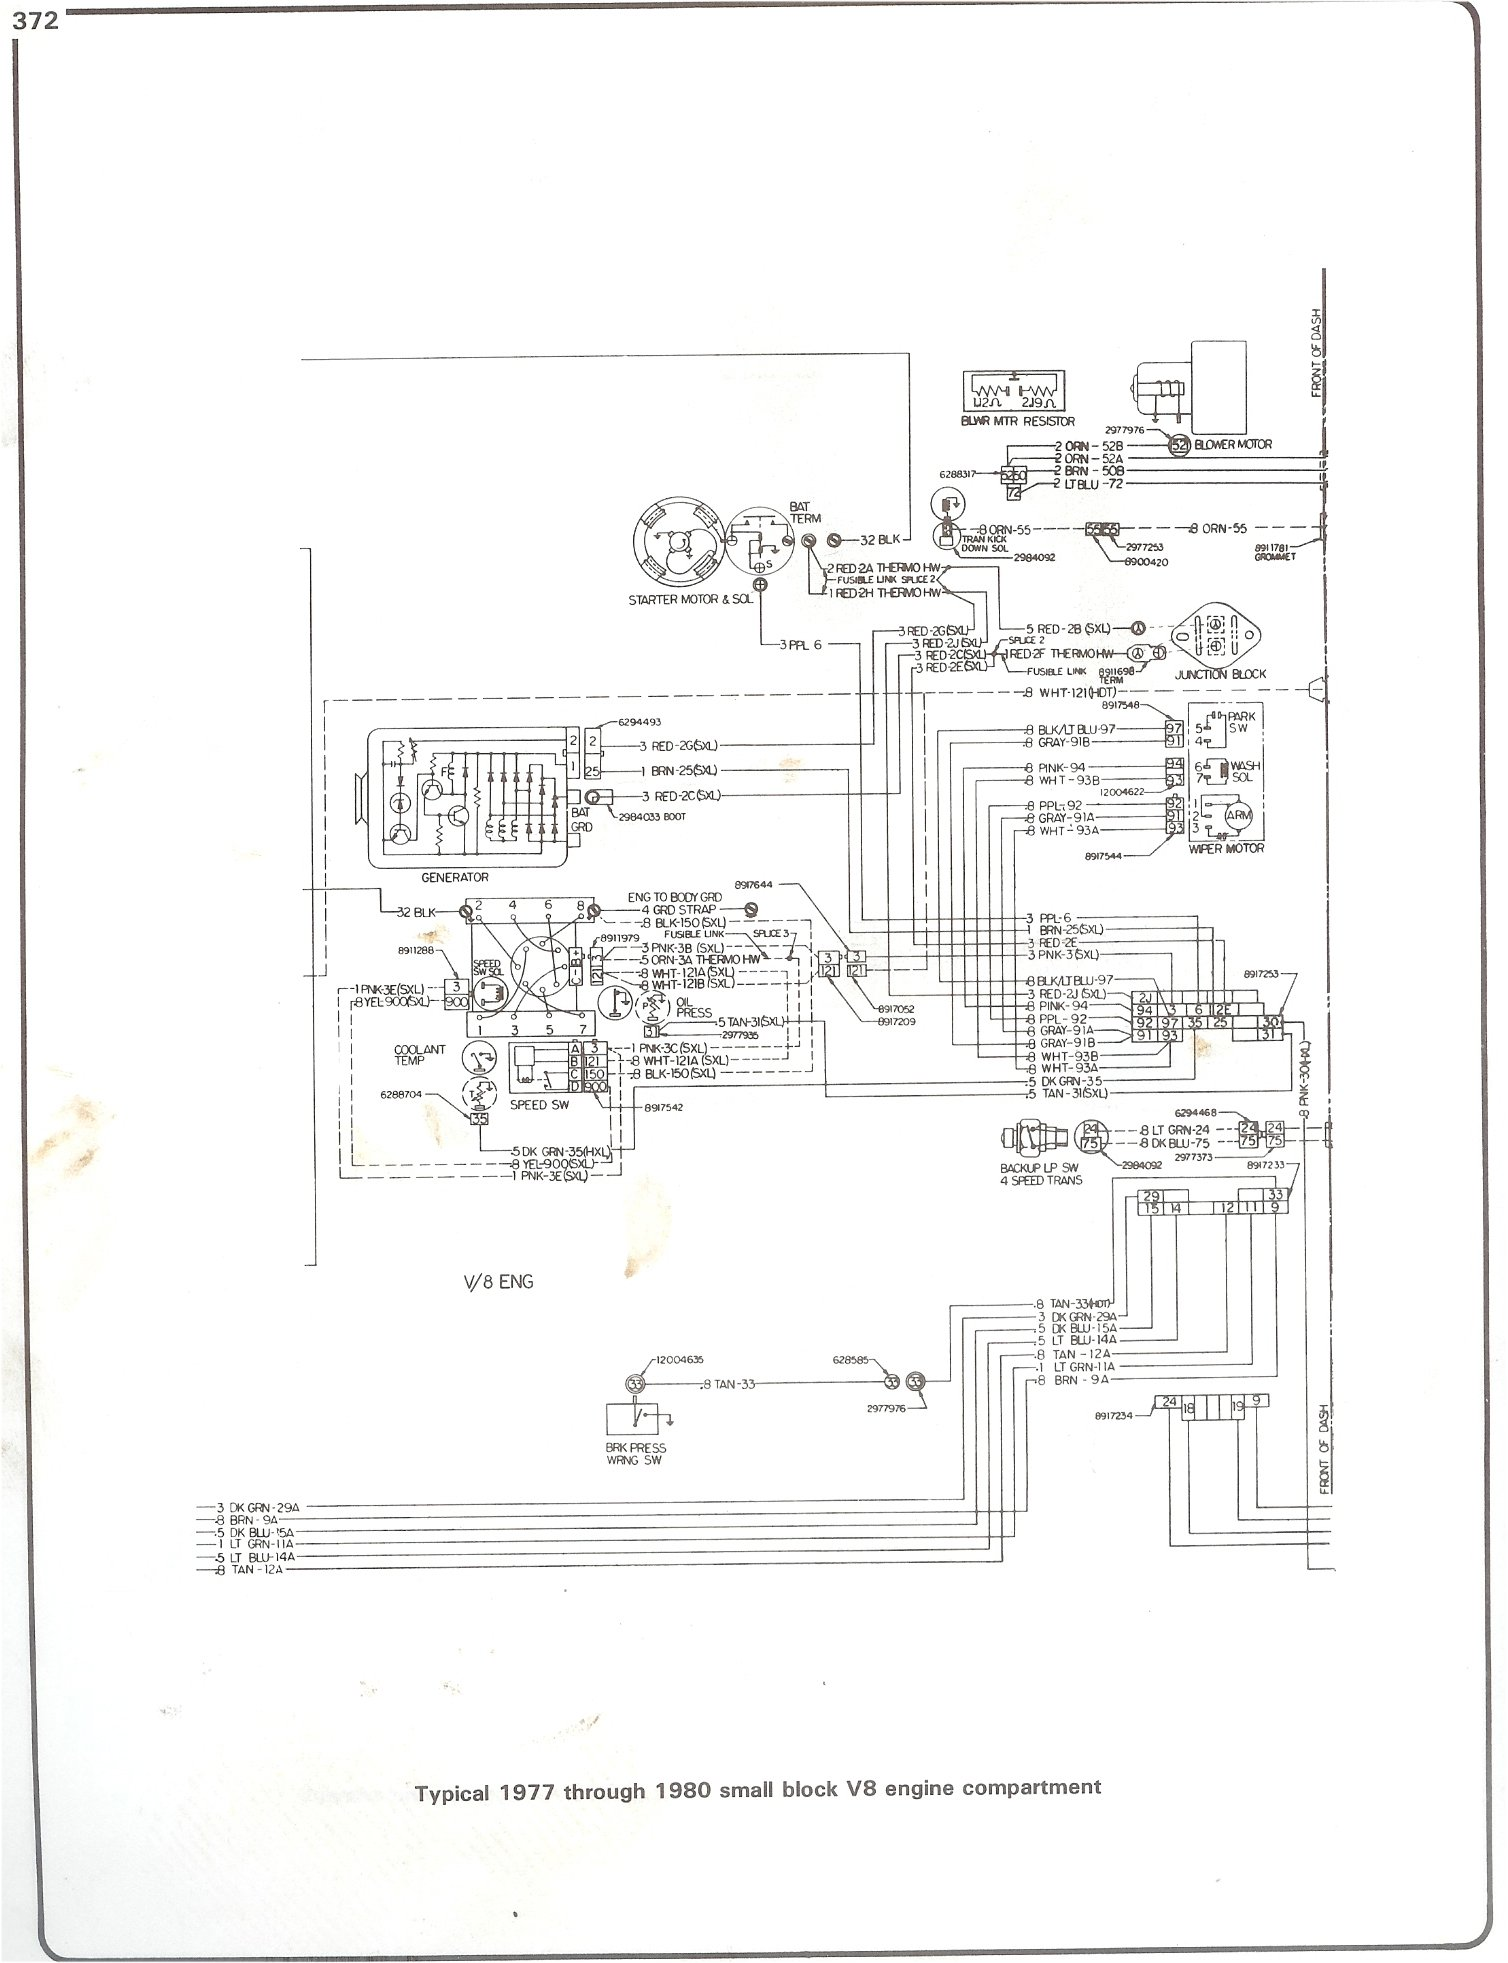 Complete 73 87 Wiring Diagrams 1992 S10 Ac Diagram Schematic 77 80 Sbc Engine